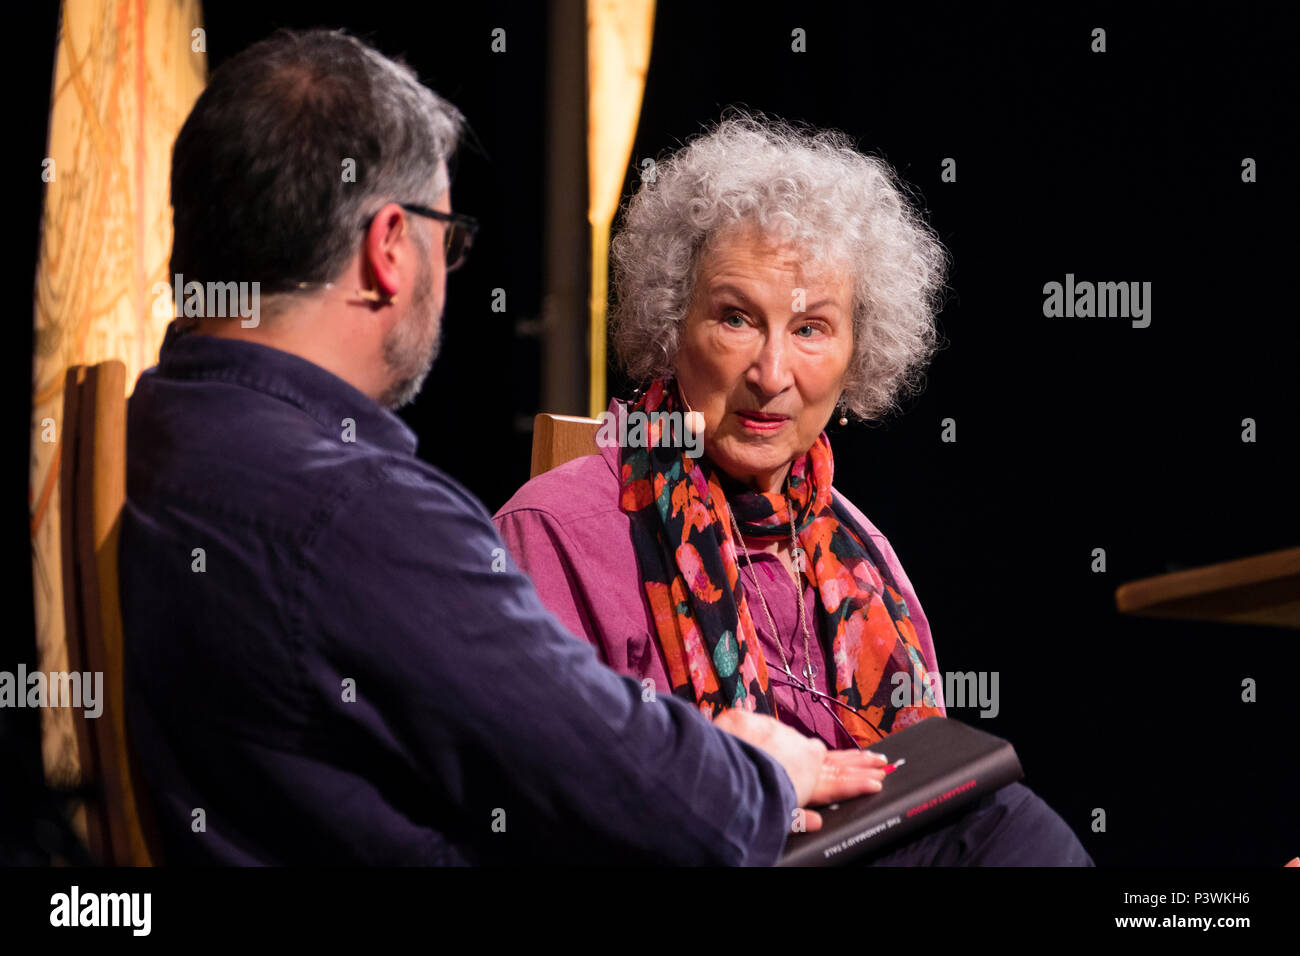 Margaret Atwood, acclaimed Canadian poet, novelist, literary critic, essayist, inventor, teacher and environmental activist.  Pictured talking to Peter Florence, Festival director, at the 2018 Hay Festival of Literature and the Arts.  The annual festival  in the small town of Hay on Wye on the Welsh borders , attracts  writers and thinkers from across the globe for 10 days of celebrations of the best of the written word, political though  and literary debate - Stock Image